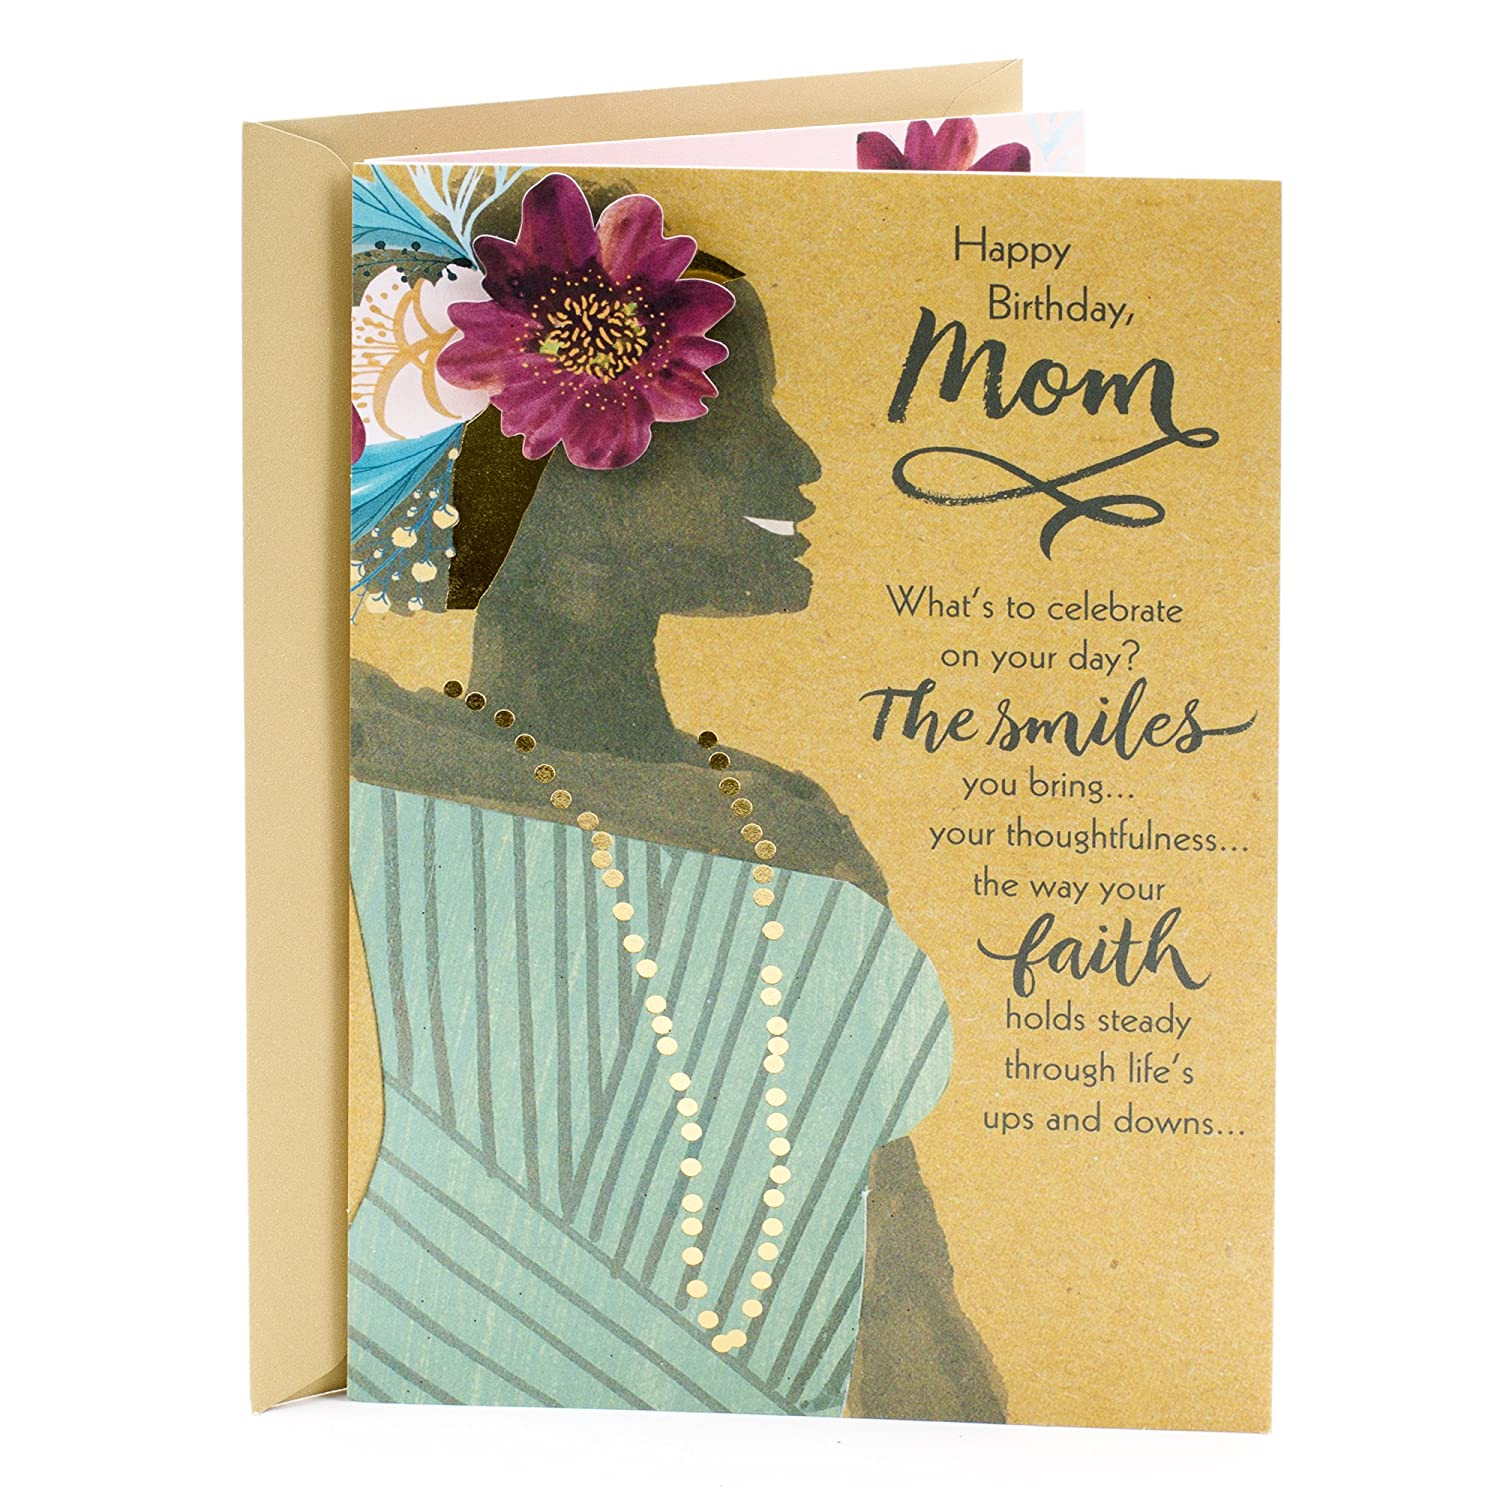 Amazon Hallmark Mahogany Religious Birthday Greeting Card For Mom Woman With Flower Office Products